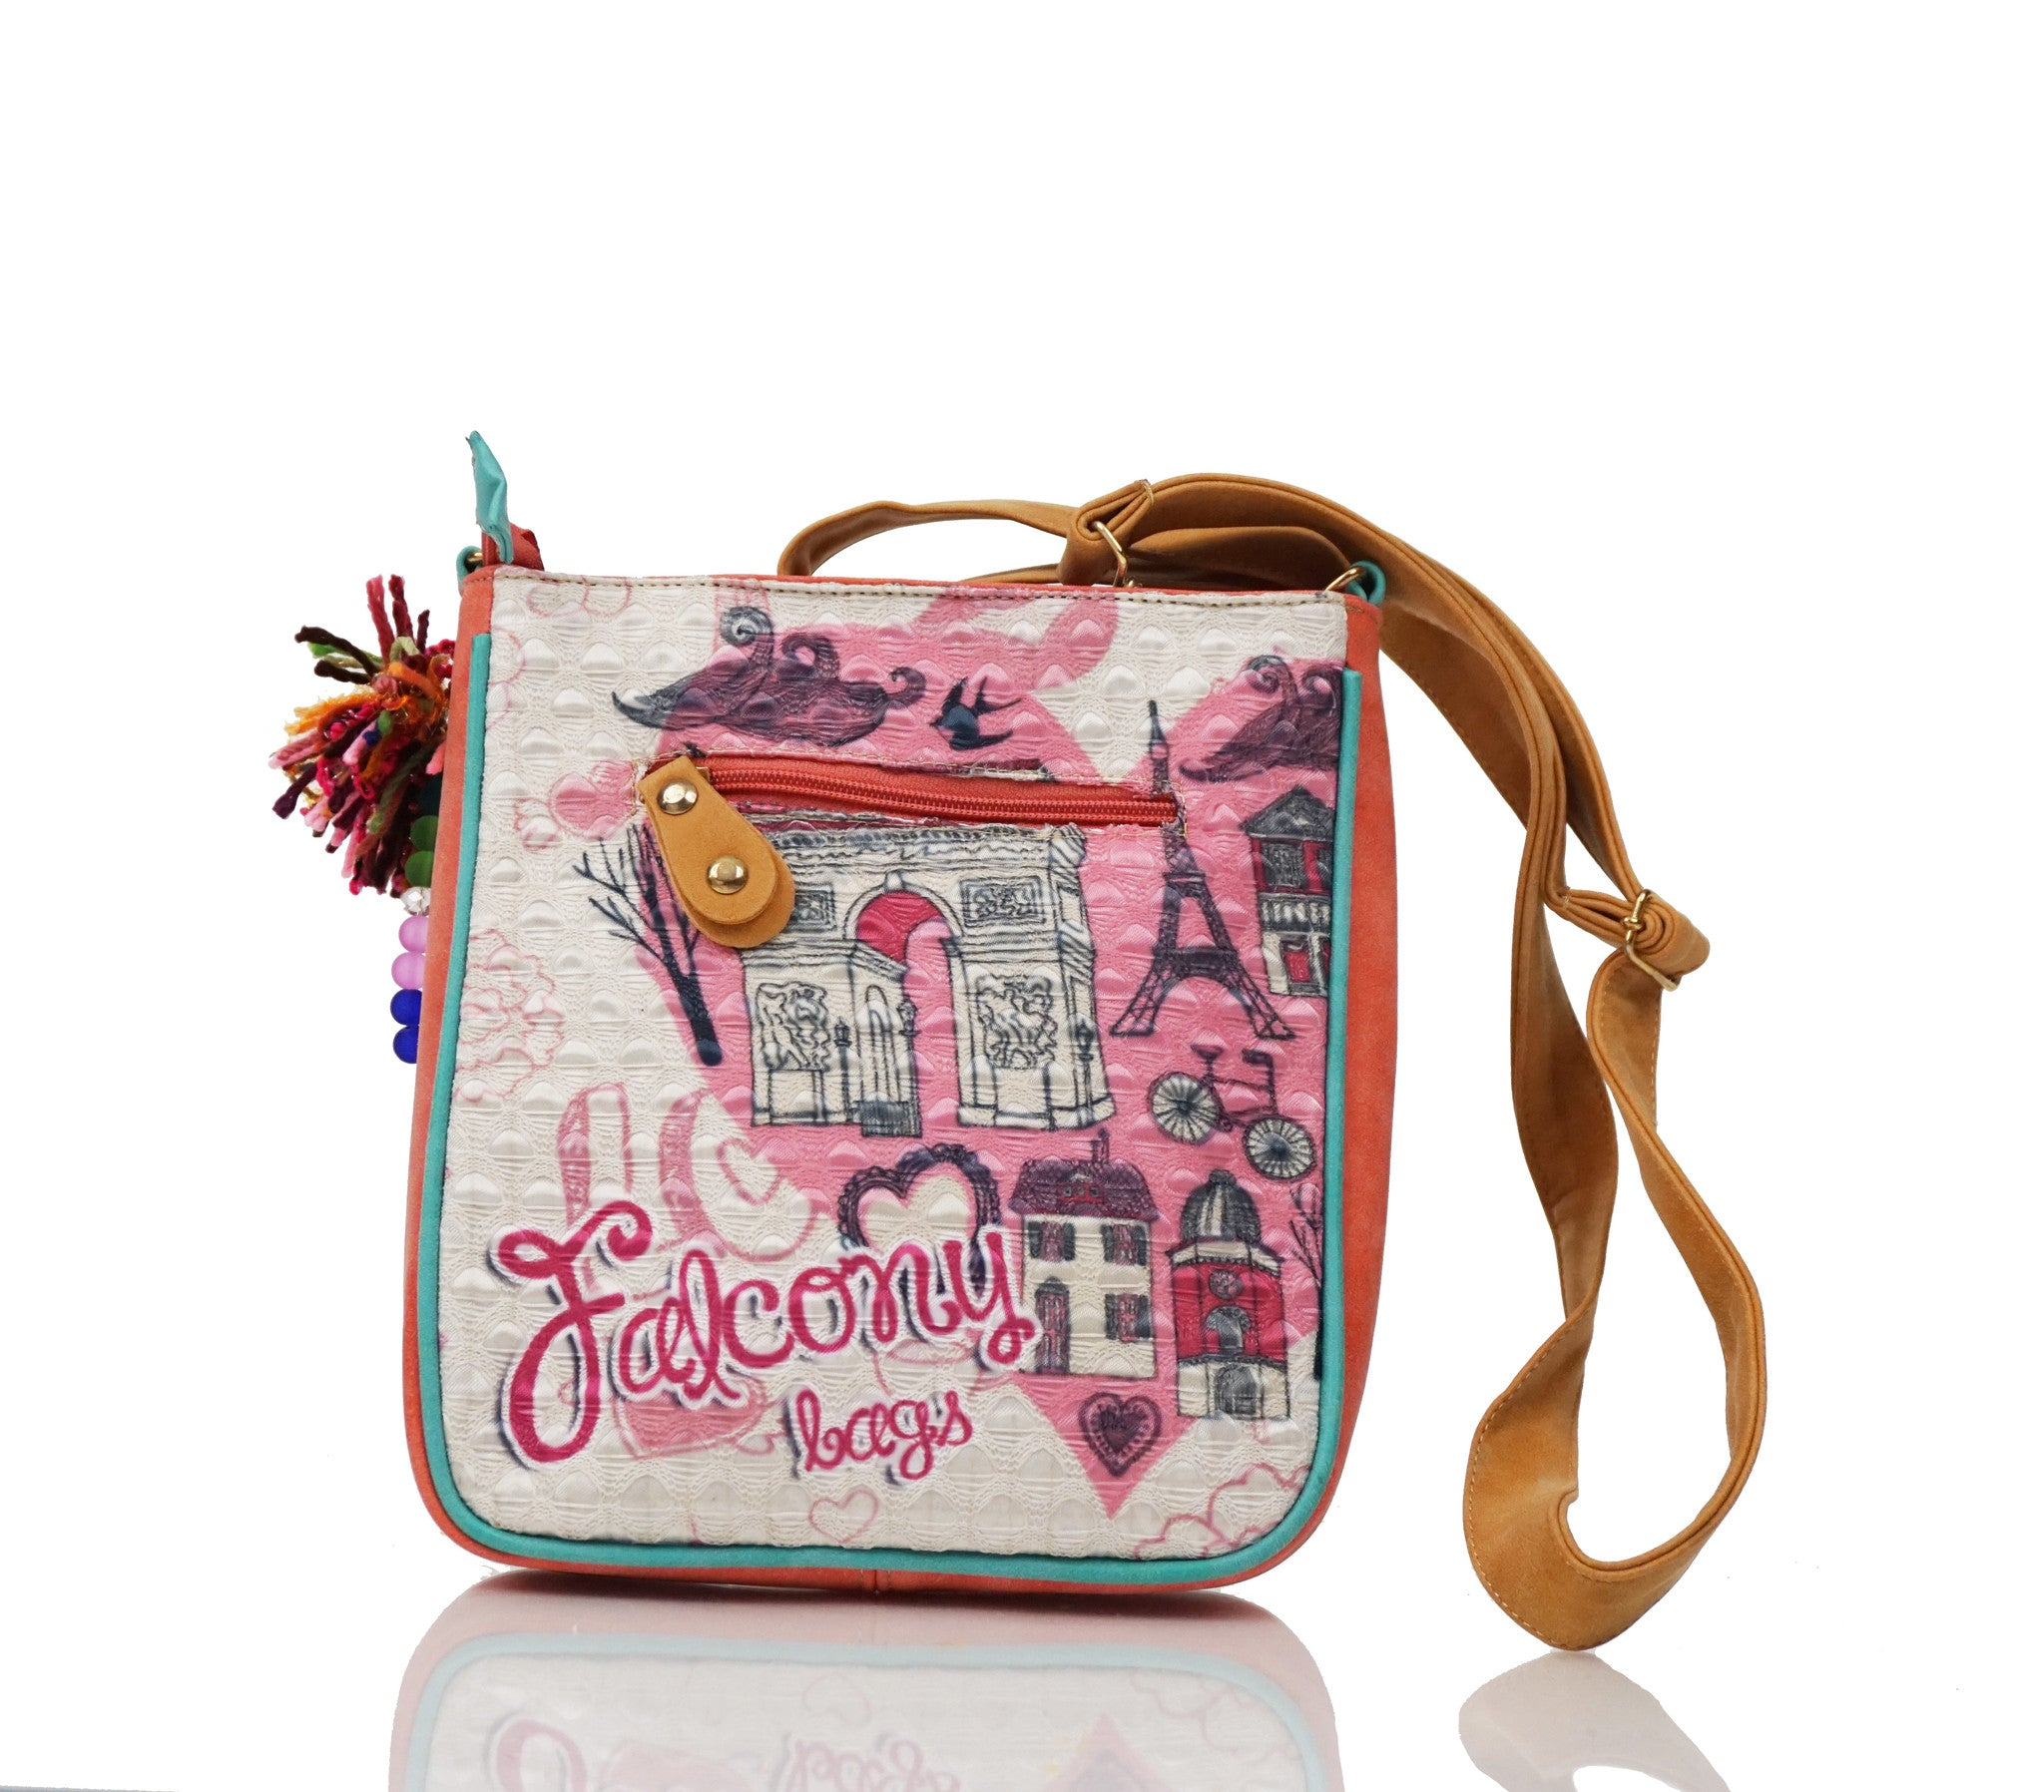 Falcony mademoiselle satchel(SOLD OUT)